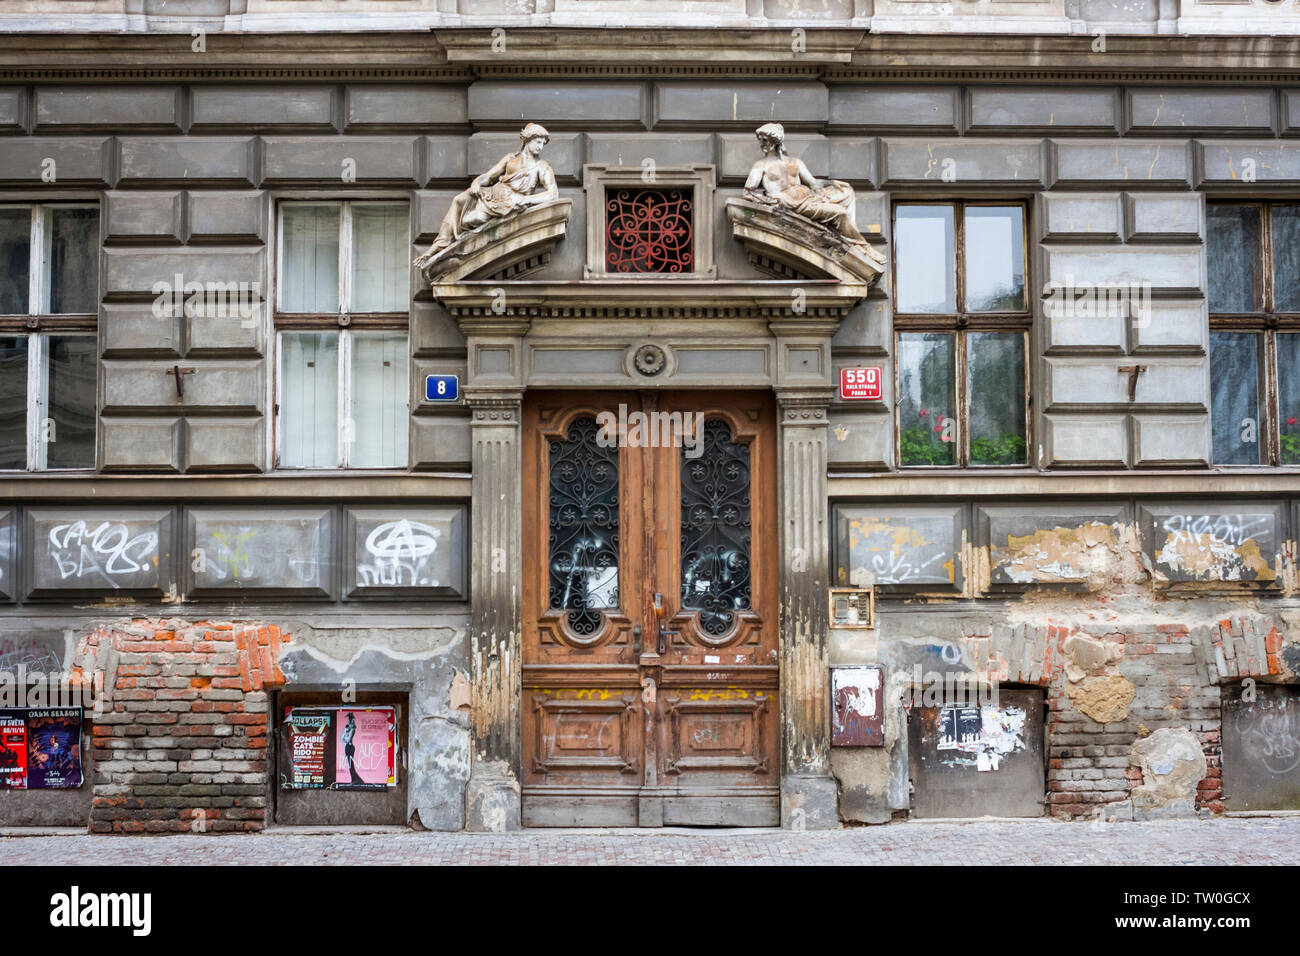 The doorway of an old building in Prague, The Czech Republic. - Stock Image